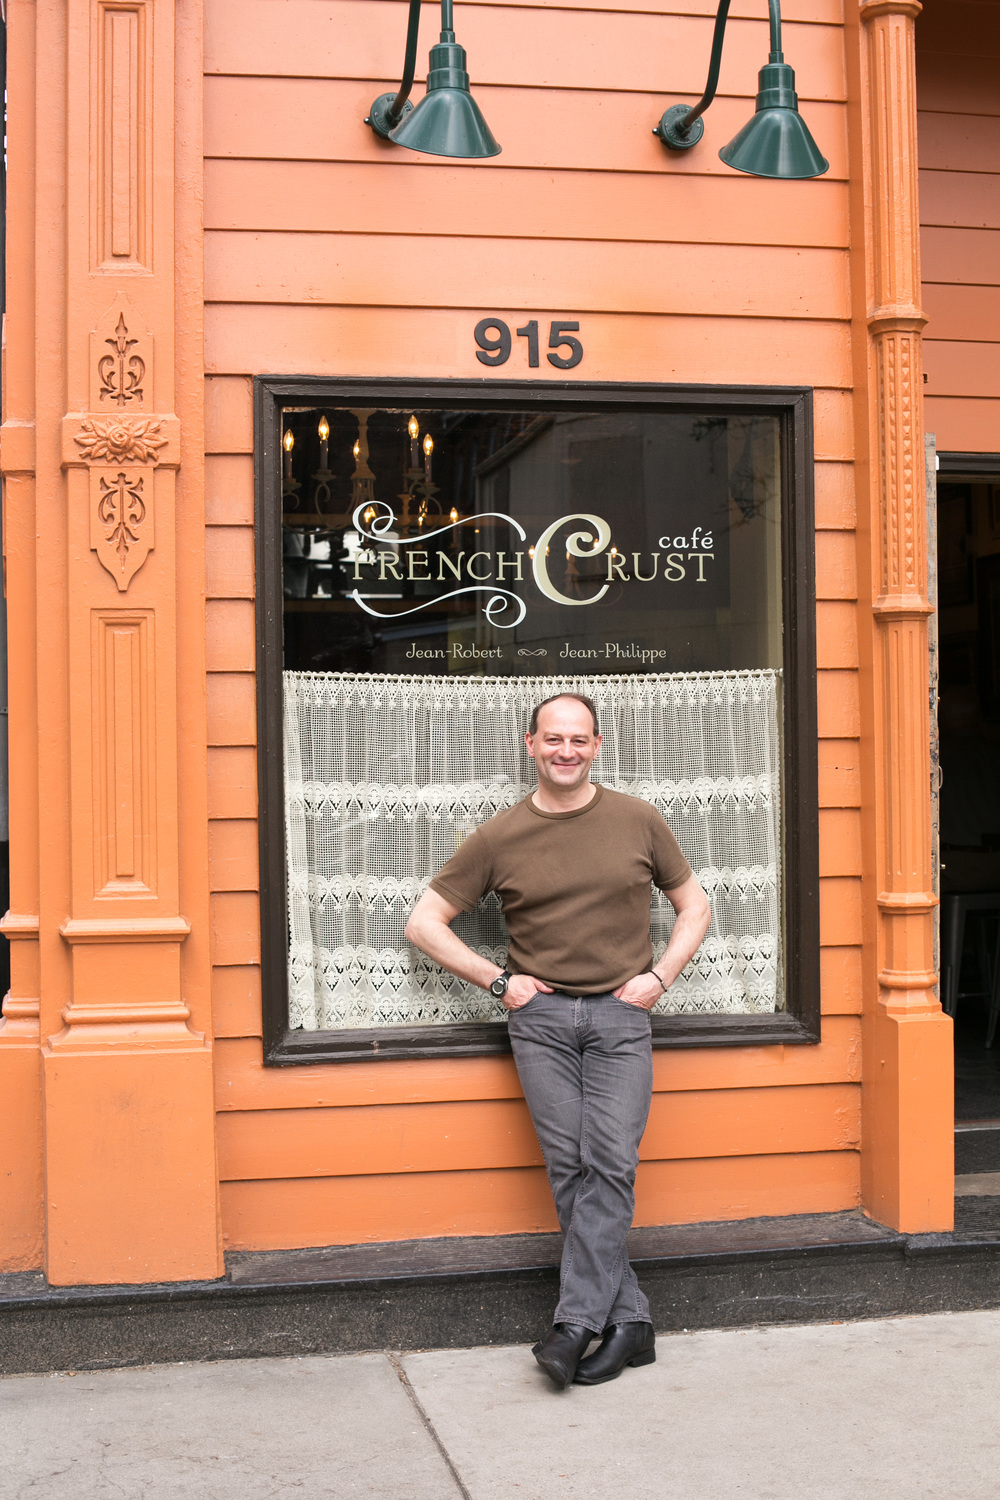 Co-owner, pastry chef and chocolatier Jean Philippe Solnom stands outside this charming little breakfast and lunch café co-owned by Chef Jean-Robert de Cavel, chef and owner of Jean-Robert's Table.